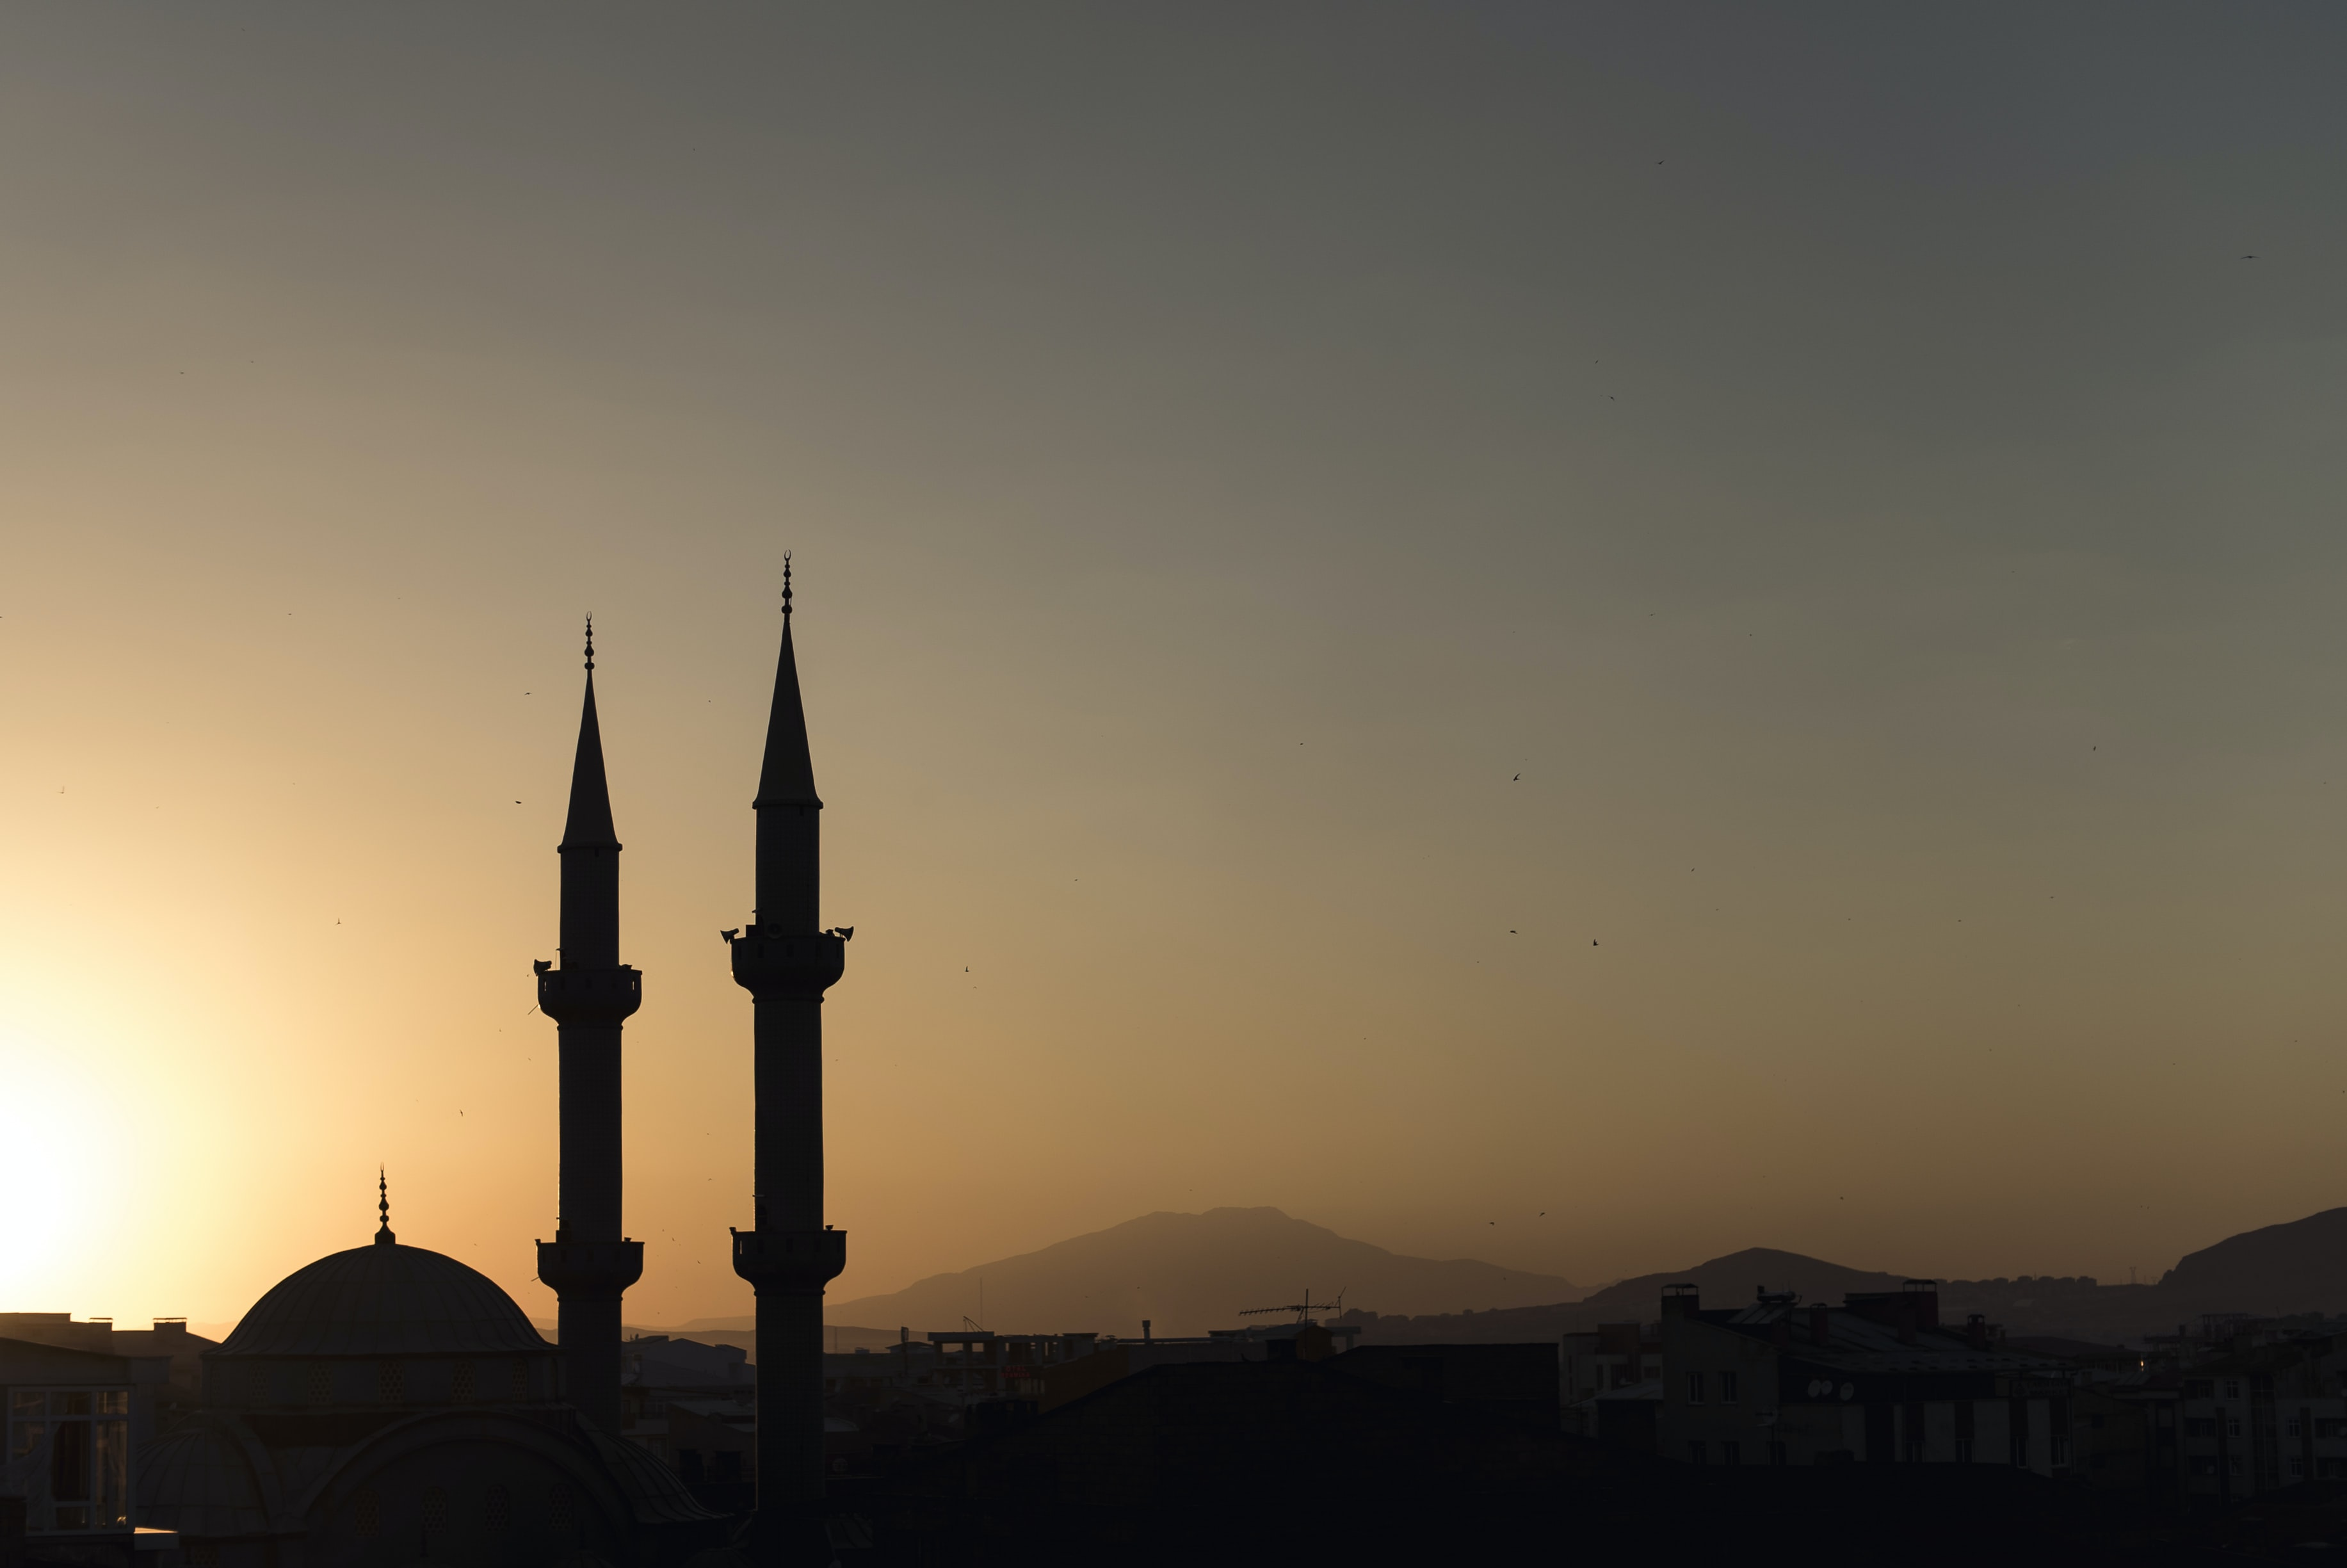 two mosque minarets under calm sky